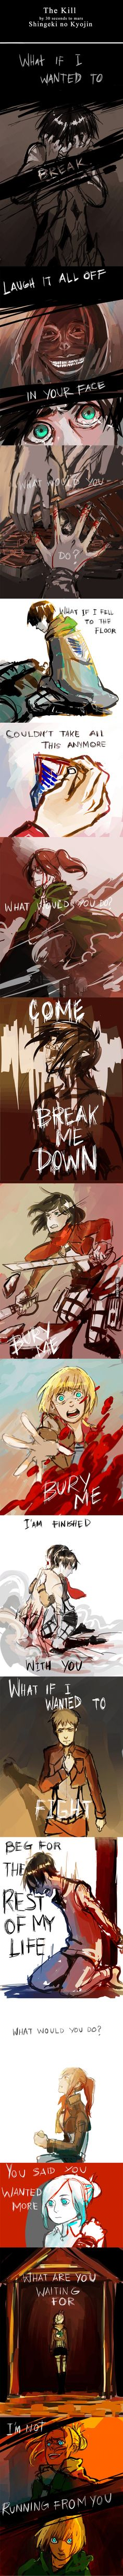 ||Attack on Titan: The Kill: 30 Seconds to Mars|| Lo amo, lo amo, ¡Lo amo, maldita sea! ;-; Este cover es hermoso.